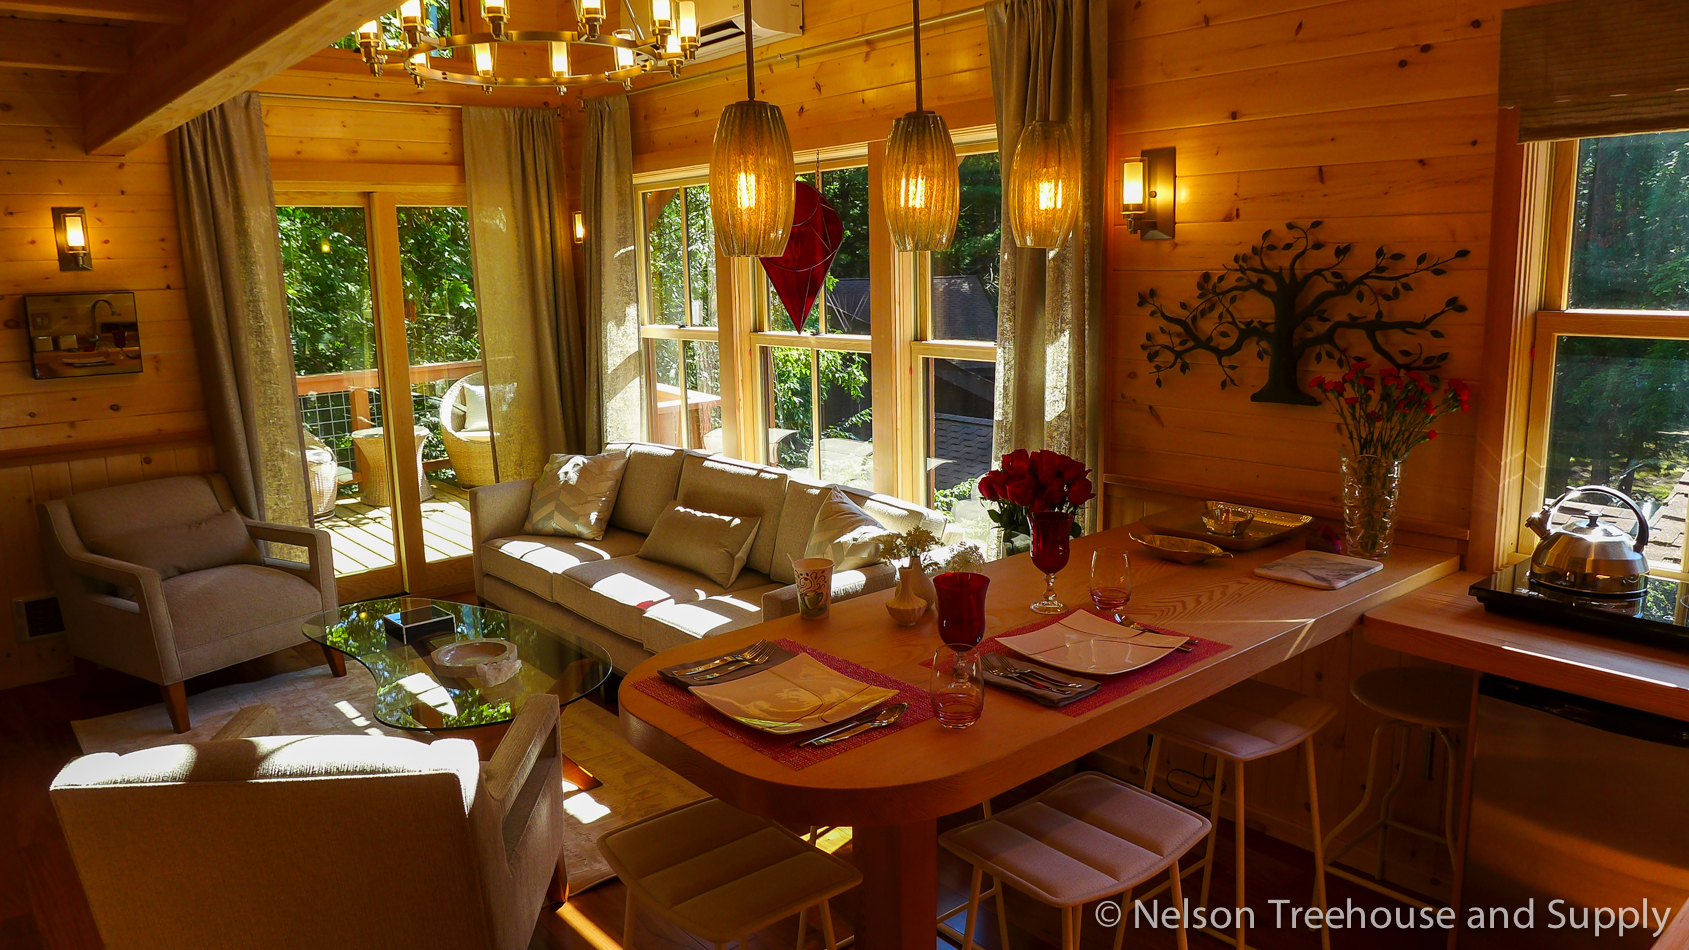 chang_treehouse_living_room_3